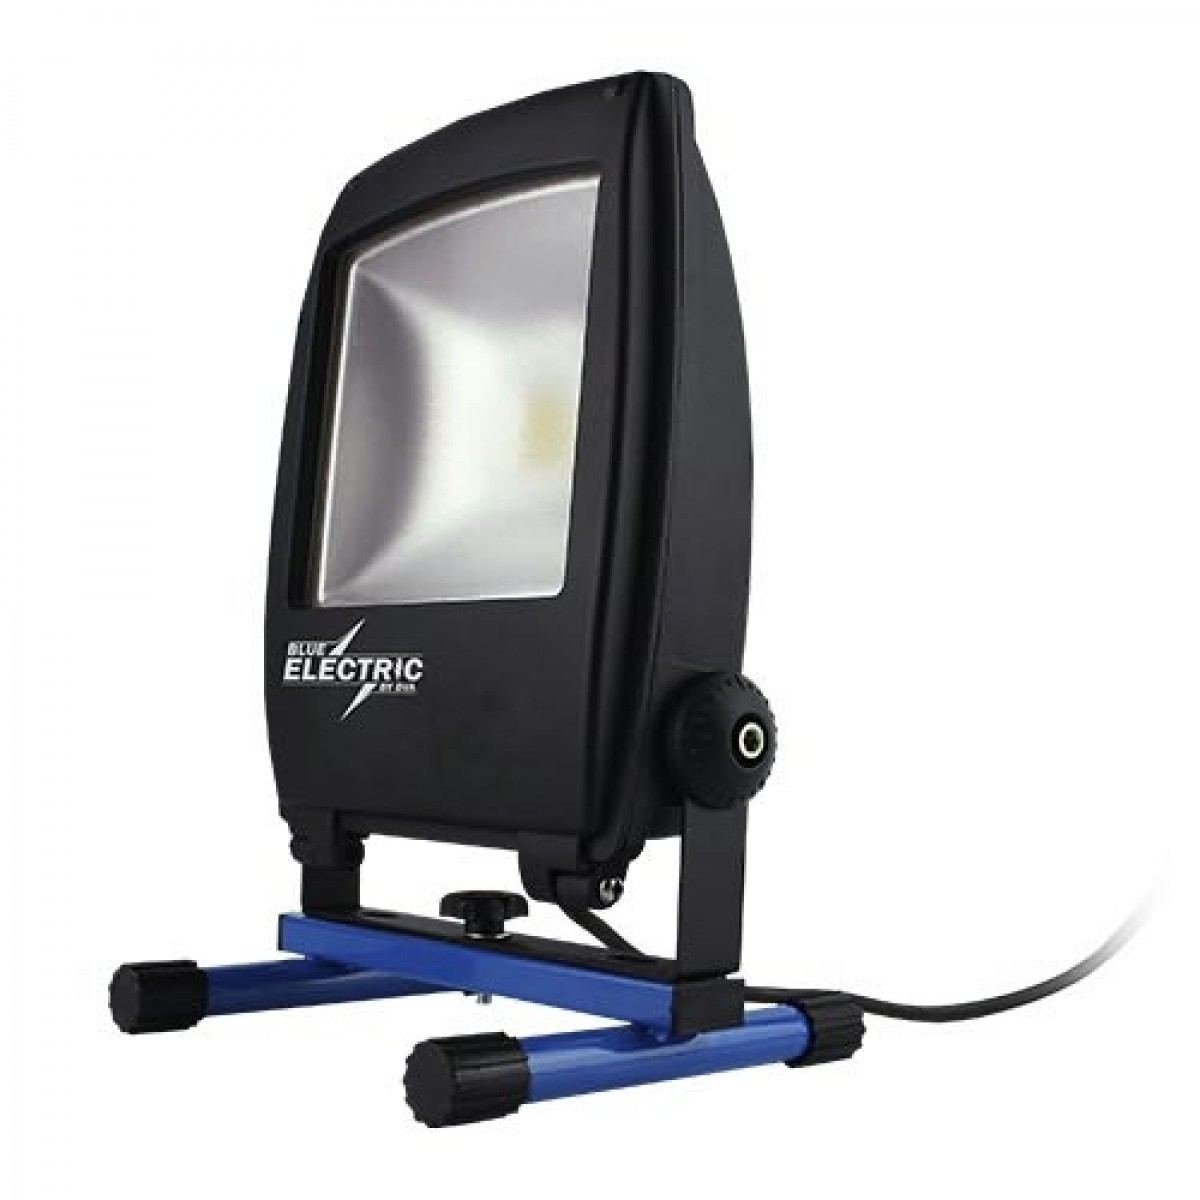 Blue Electric Led lampe 30W-32